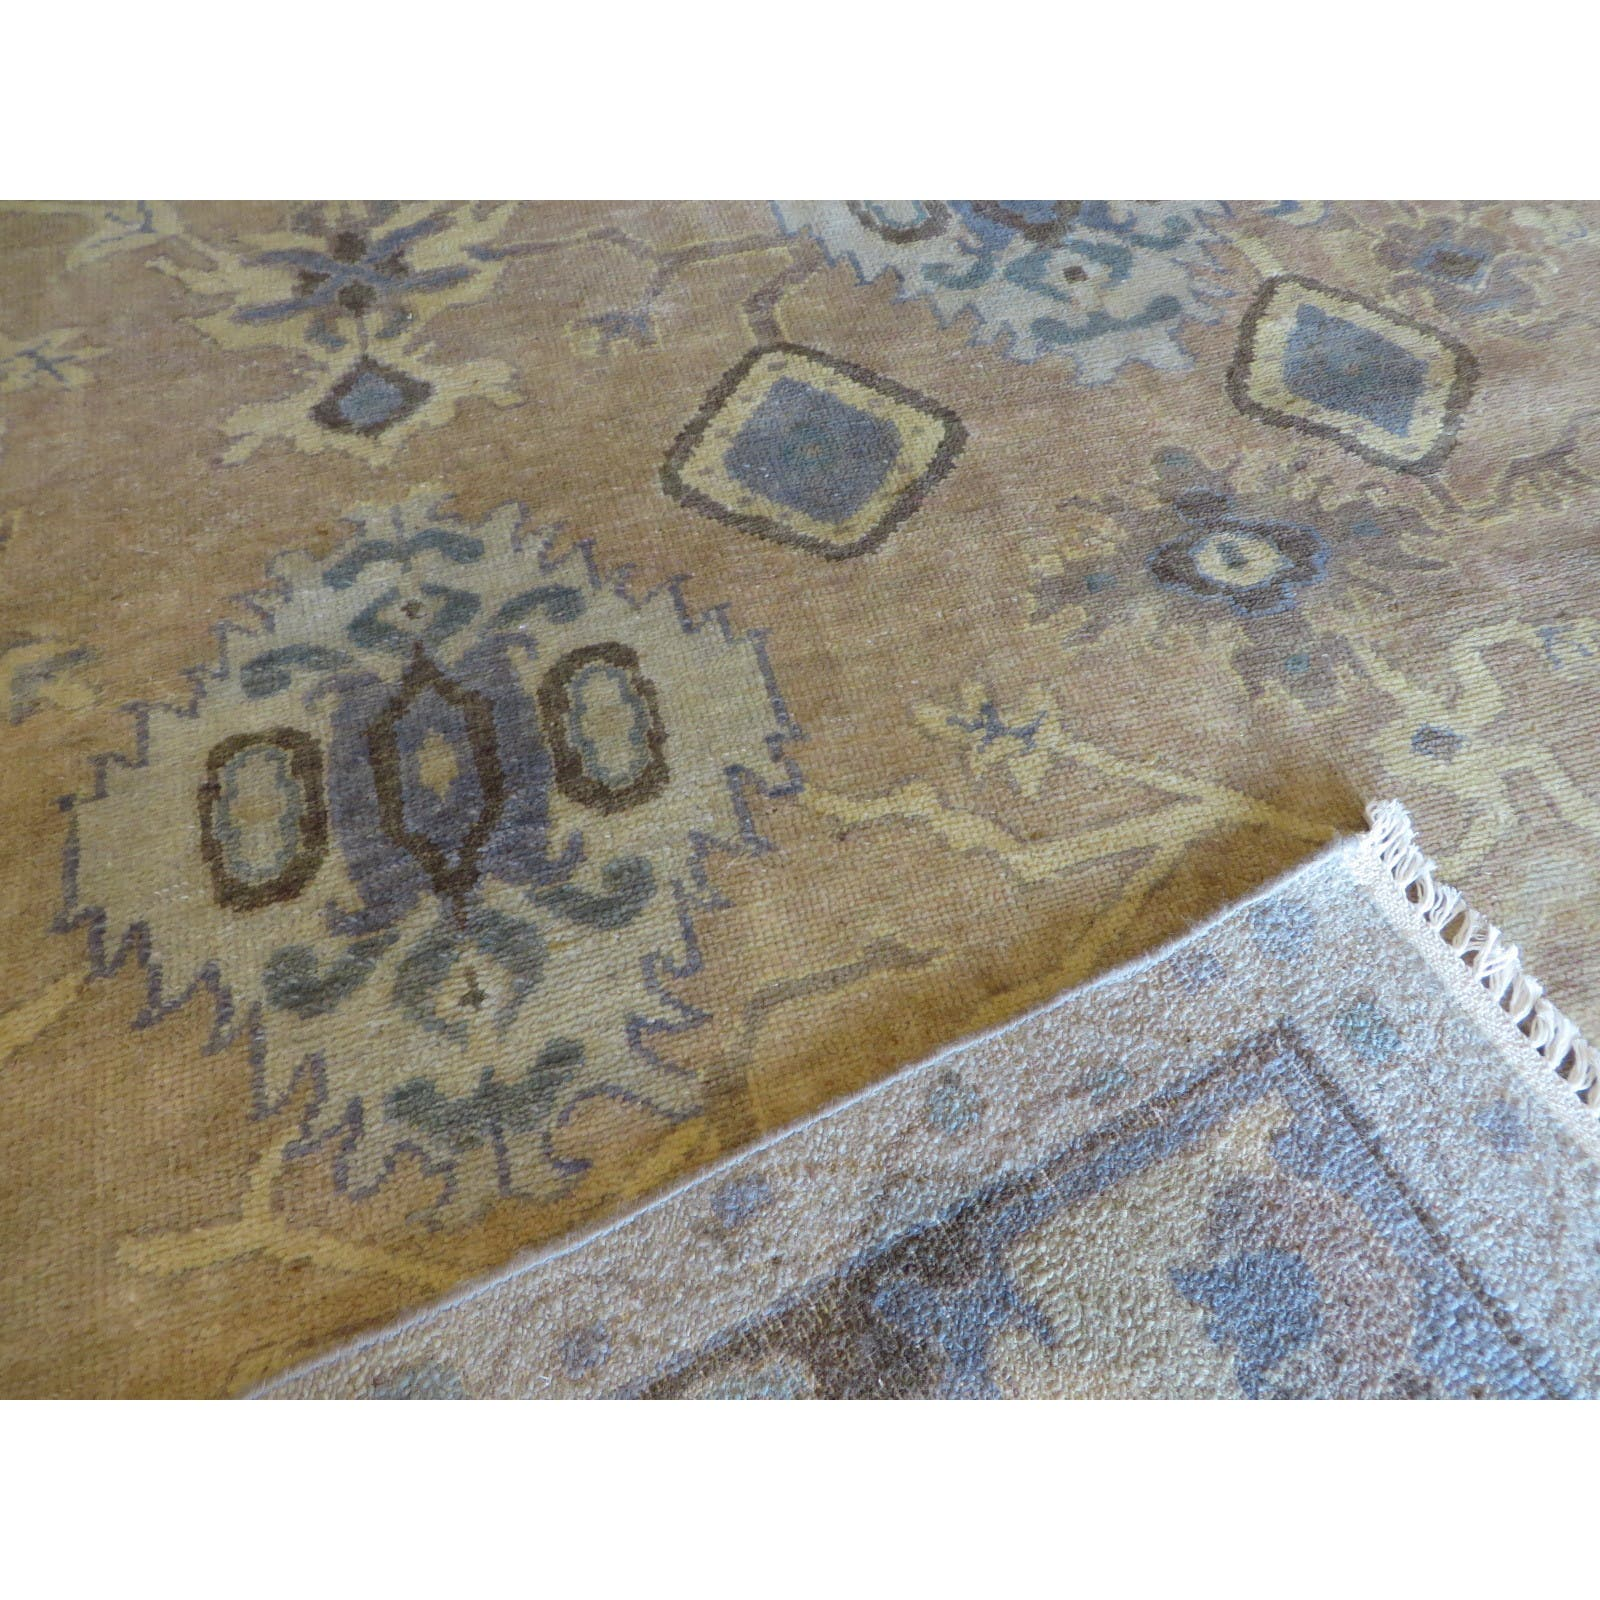 12 10 X 14 11 Persian Karajeh Hand Knotted Wool: 7x9 - 10x14 Rugs For Less